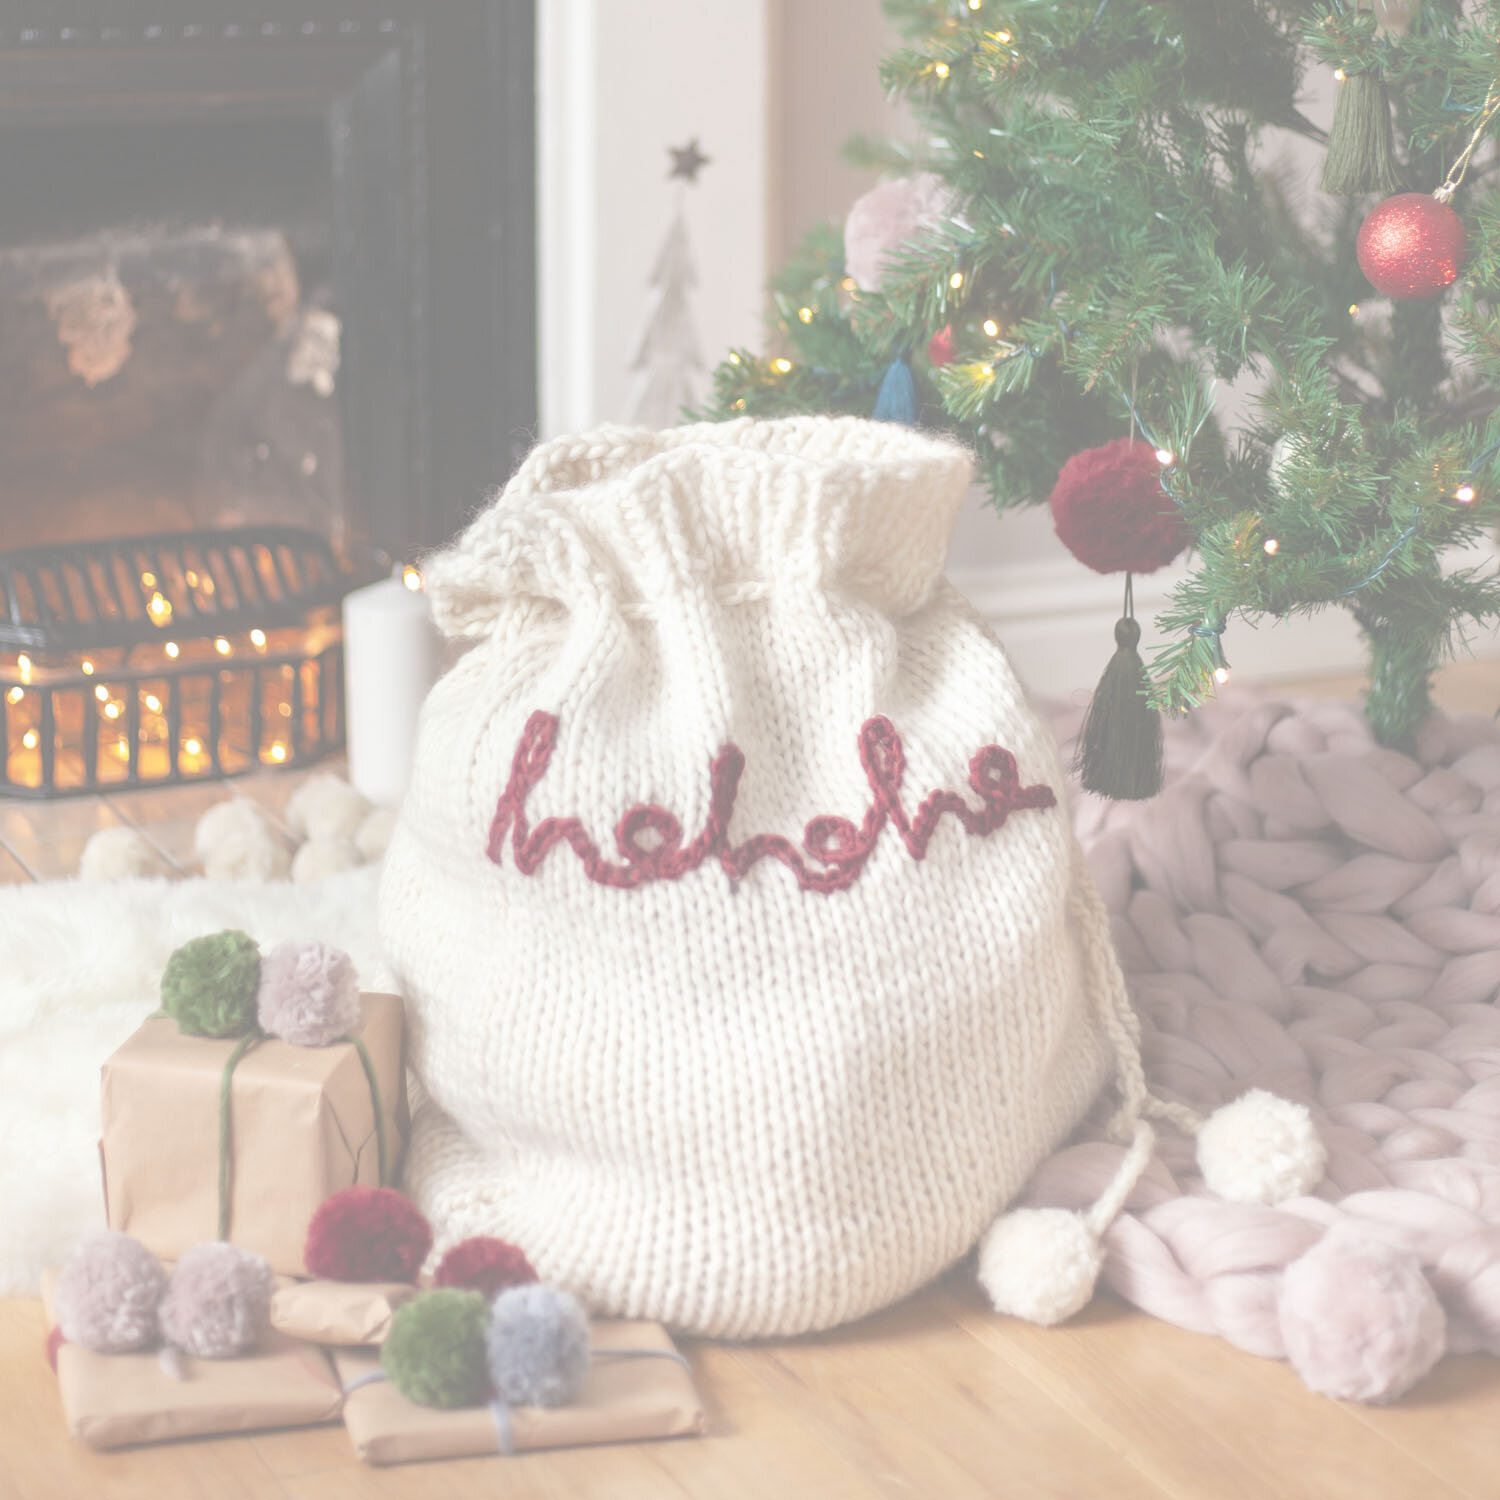 KNIT YOUR OWN CHRISTMAS - SHOP OUR KNIT KITS